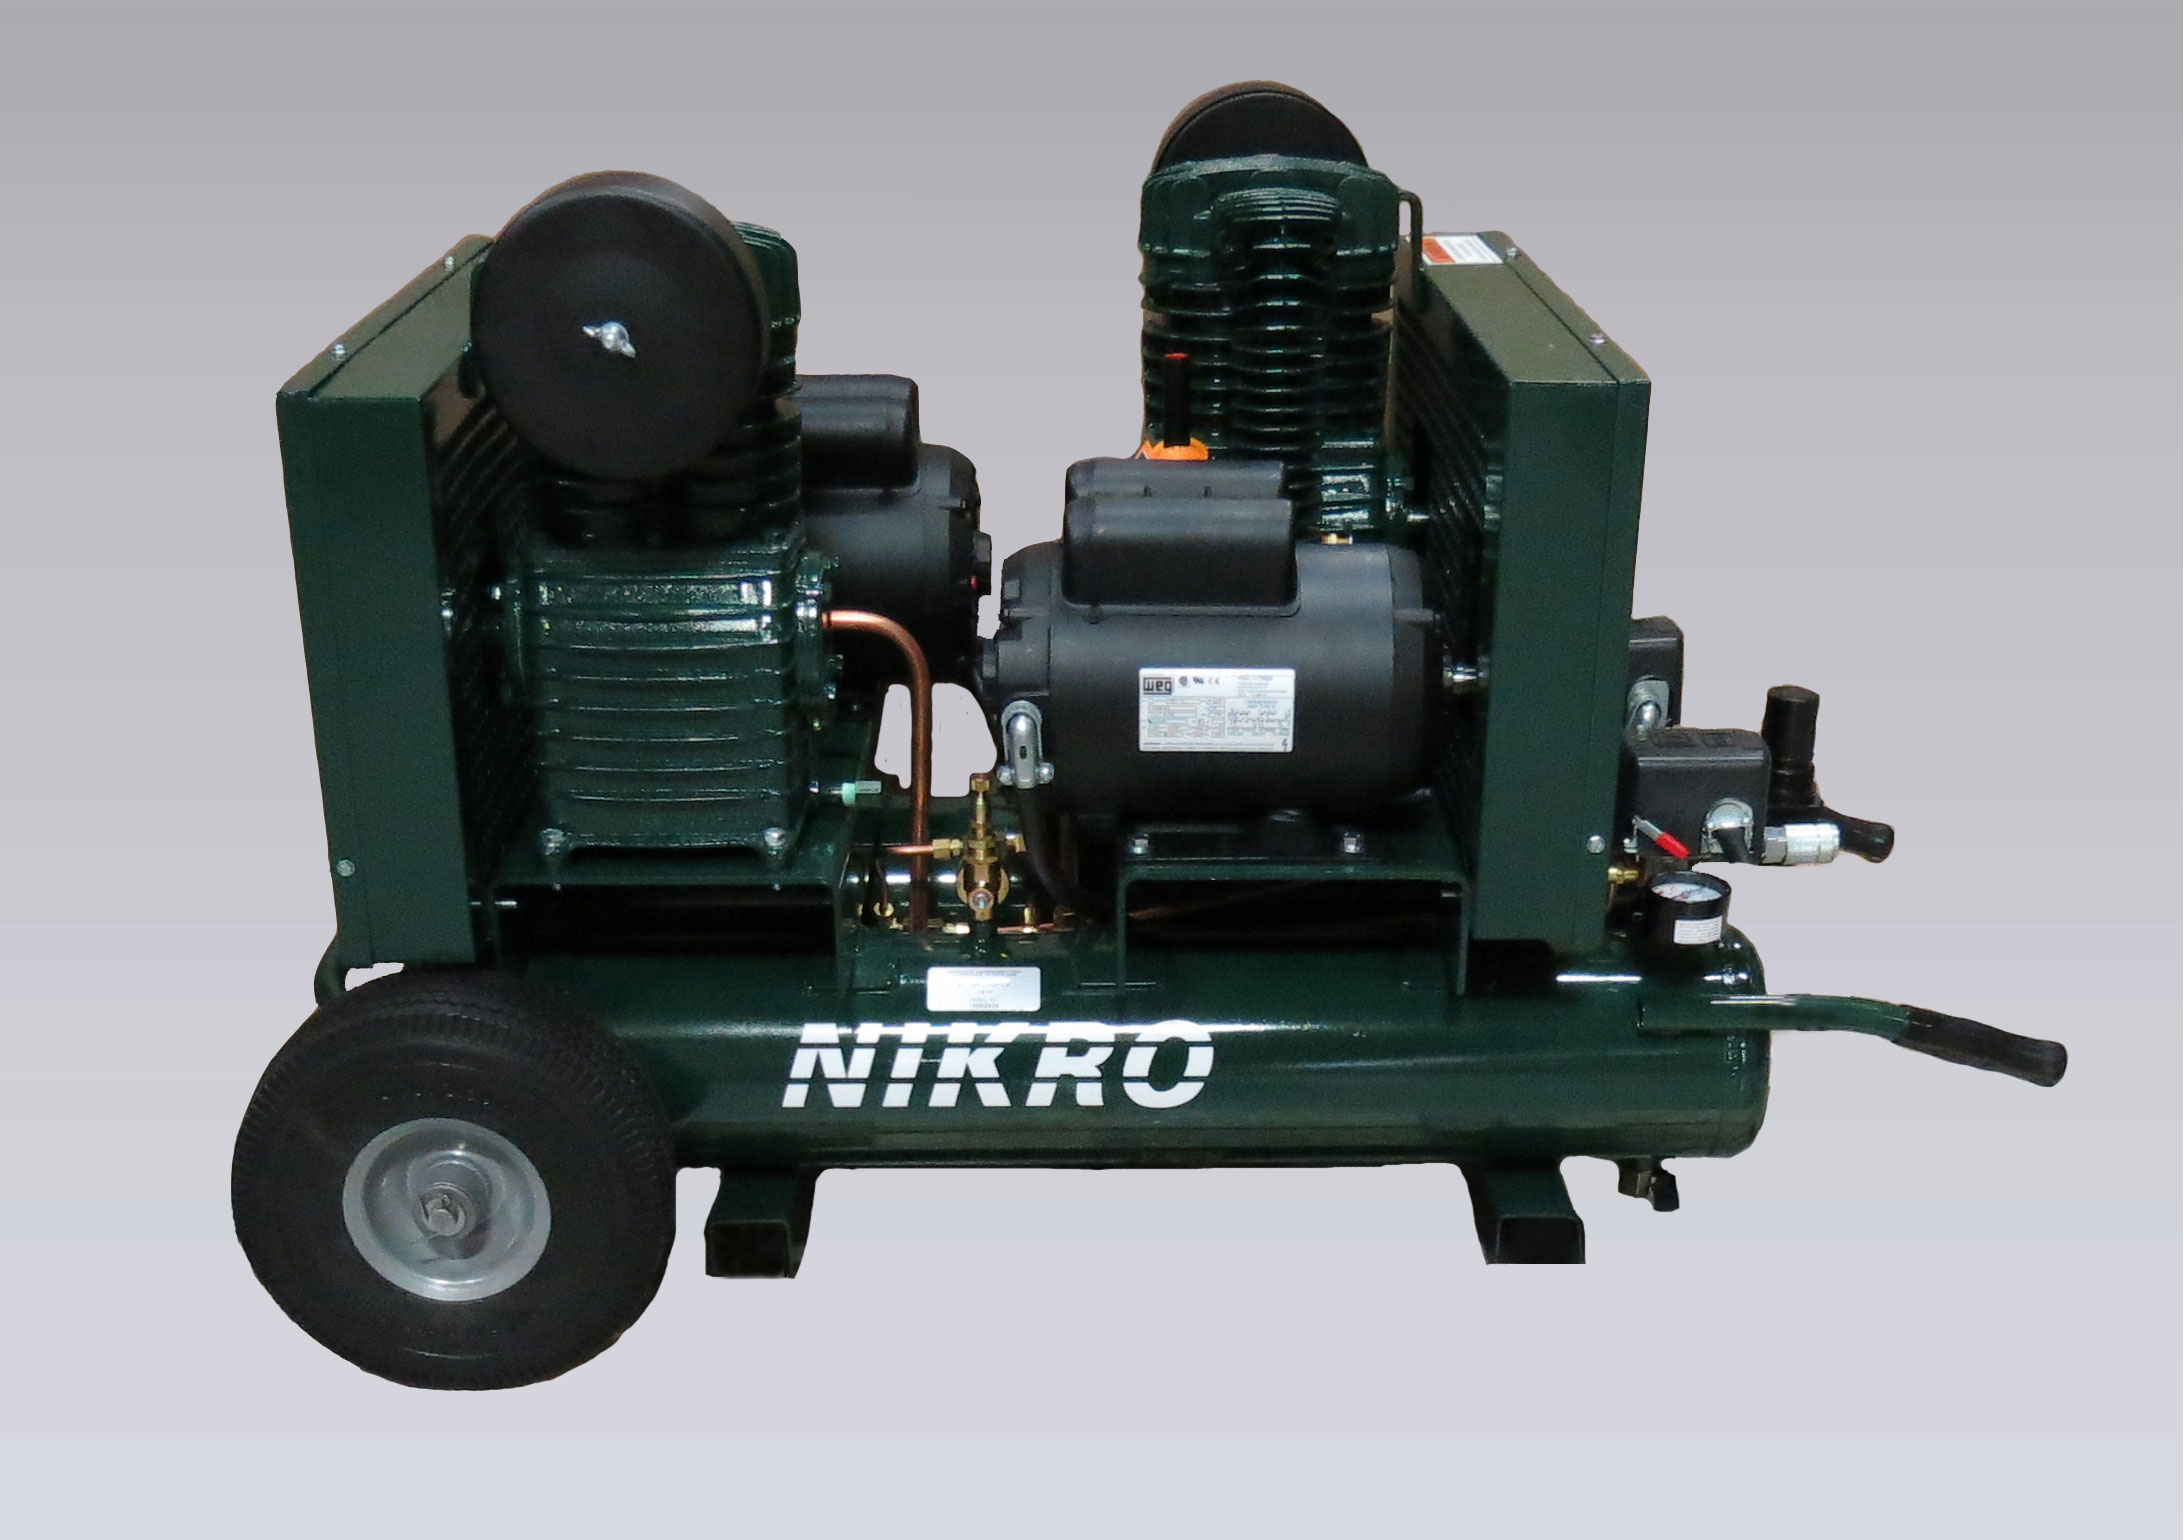 NIKRO 862512 - 115V Dual Motor & Pump Compressor - Air Duct Cleaning Equipment & Supplies 